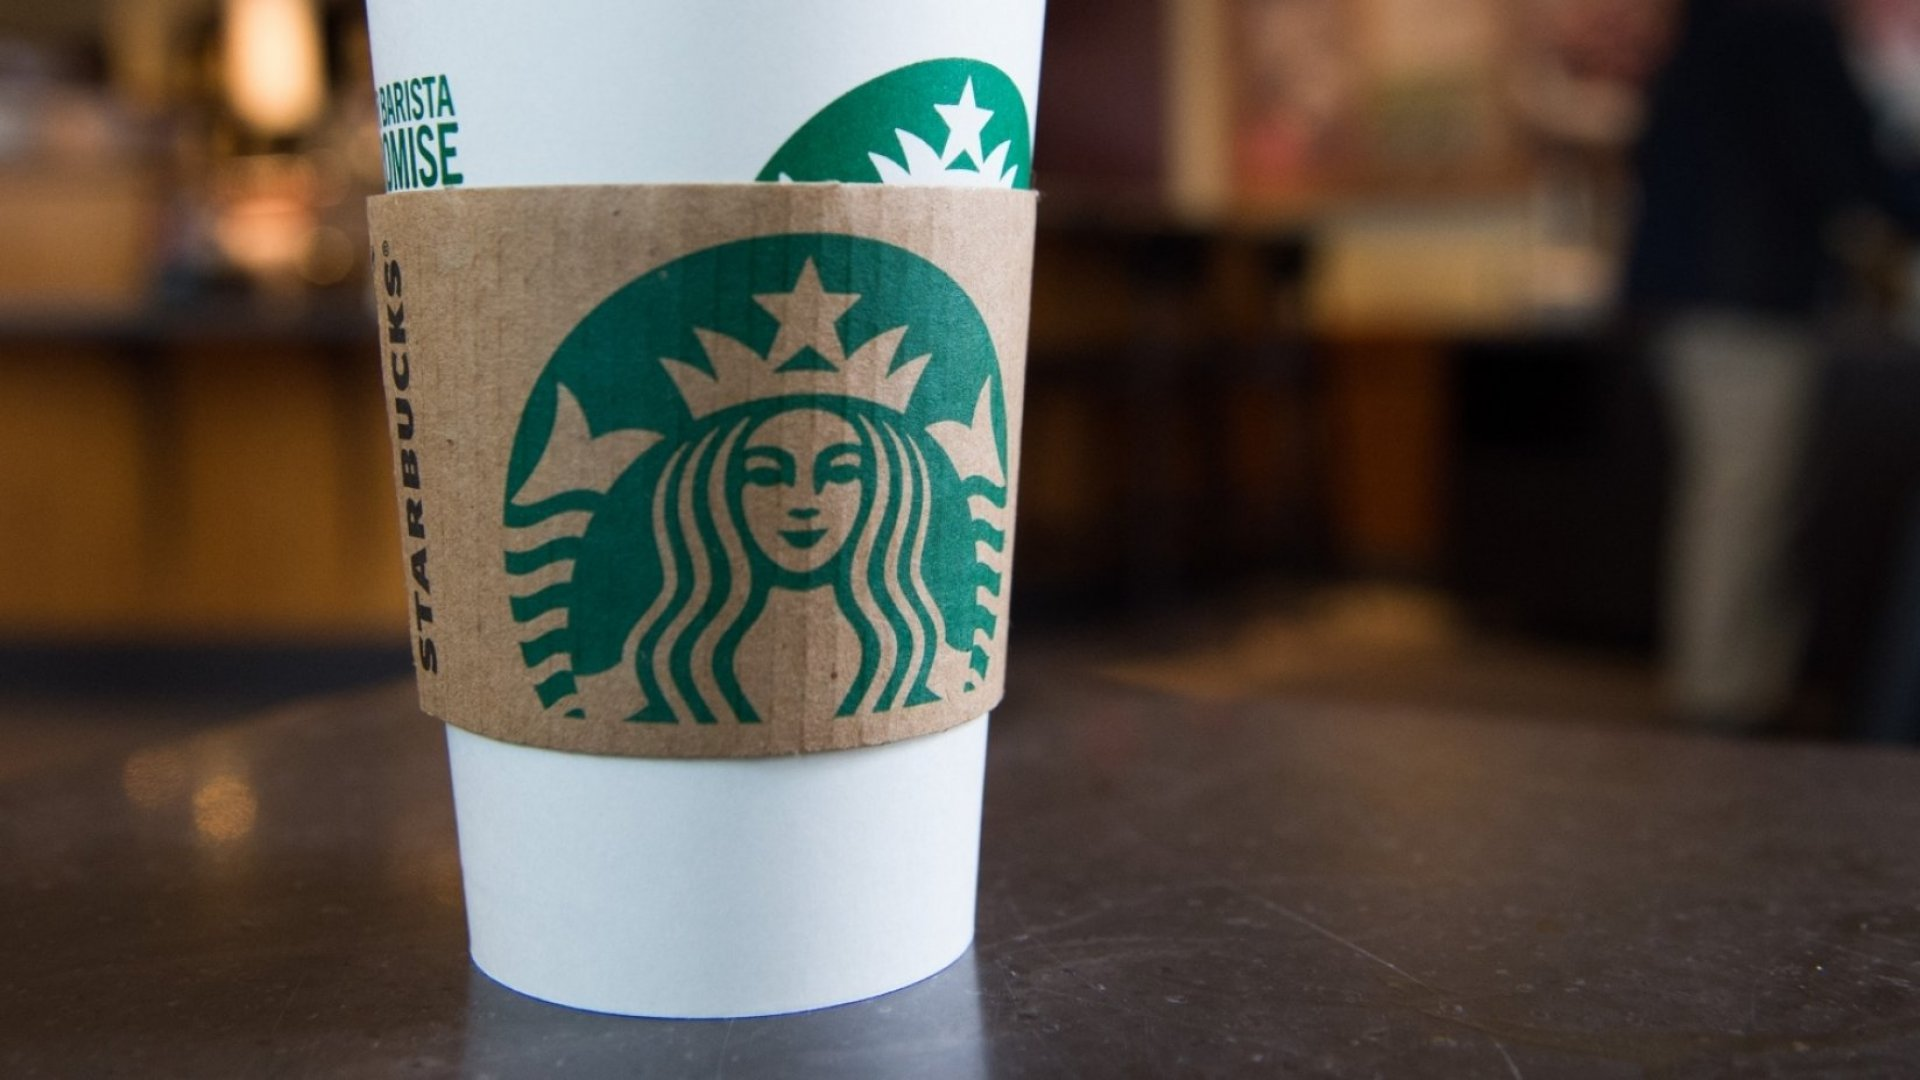 Can 'Nonpaying Customers' Hang Out at Starbucks Without Buying Anything? (Here's What Starbucks Tells Its Employees)